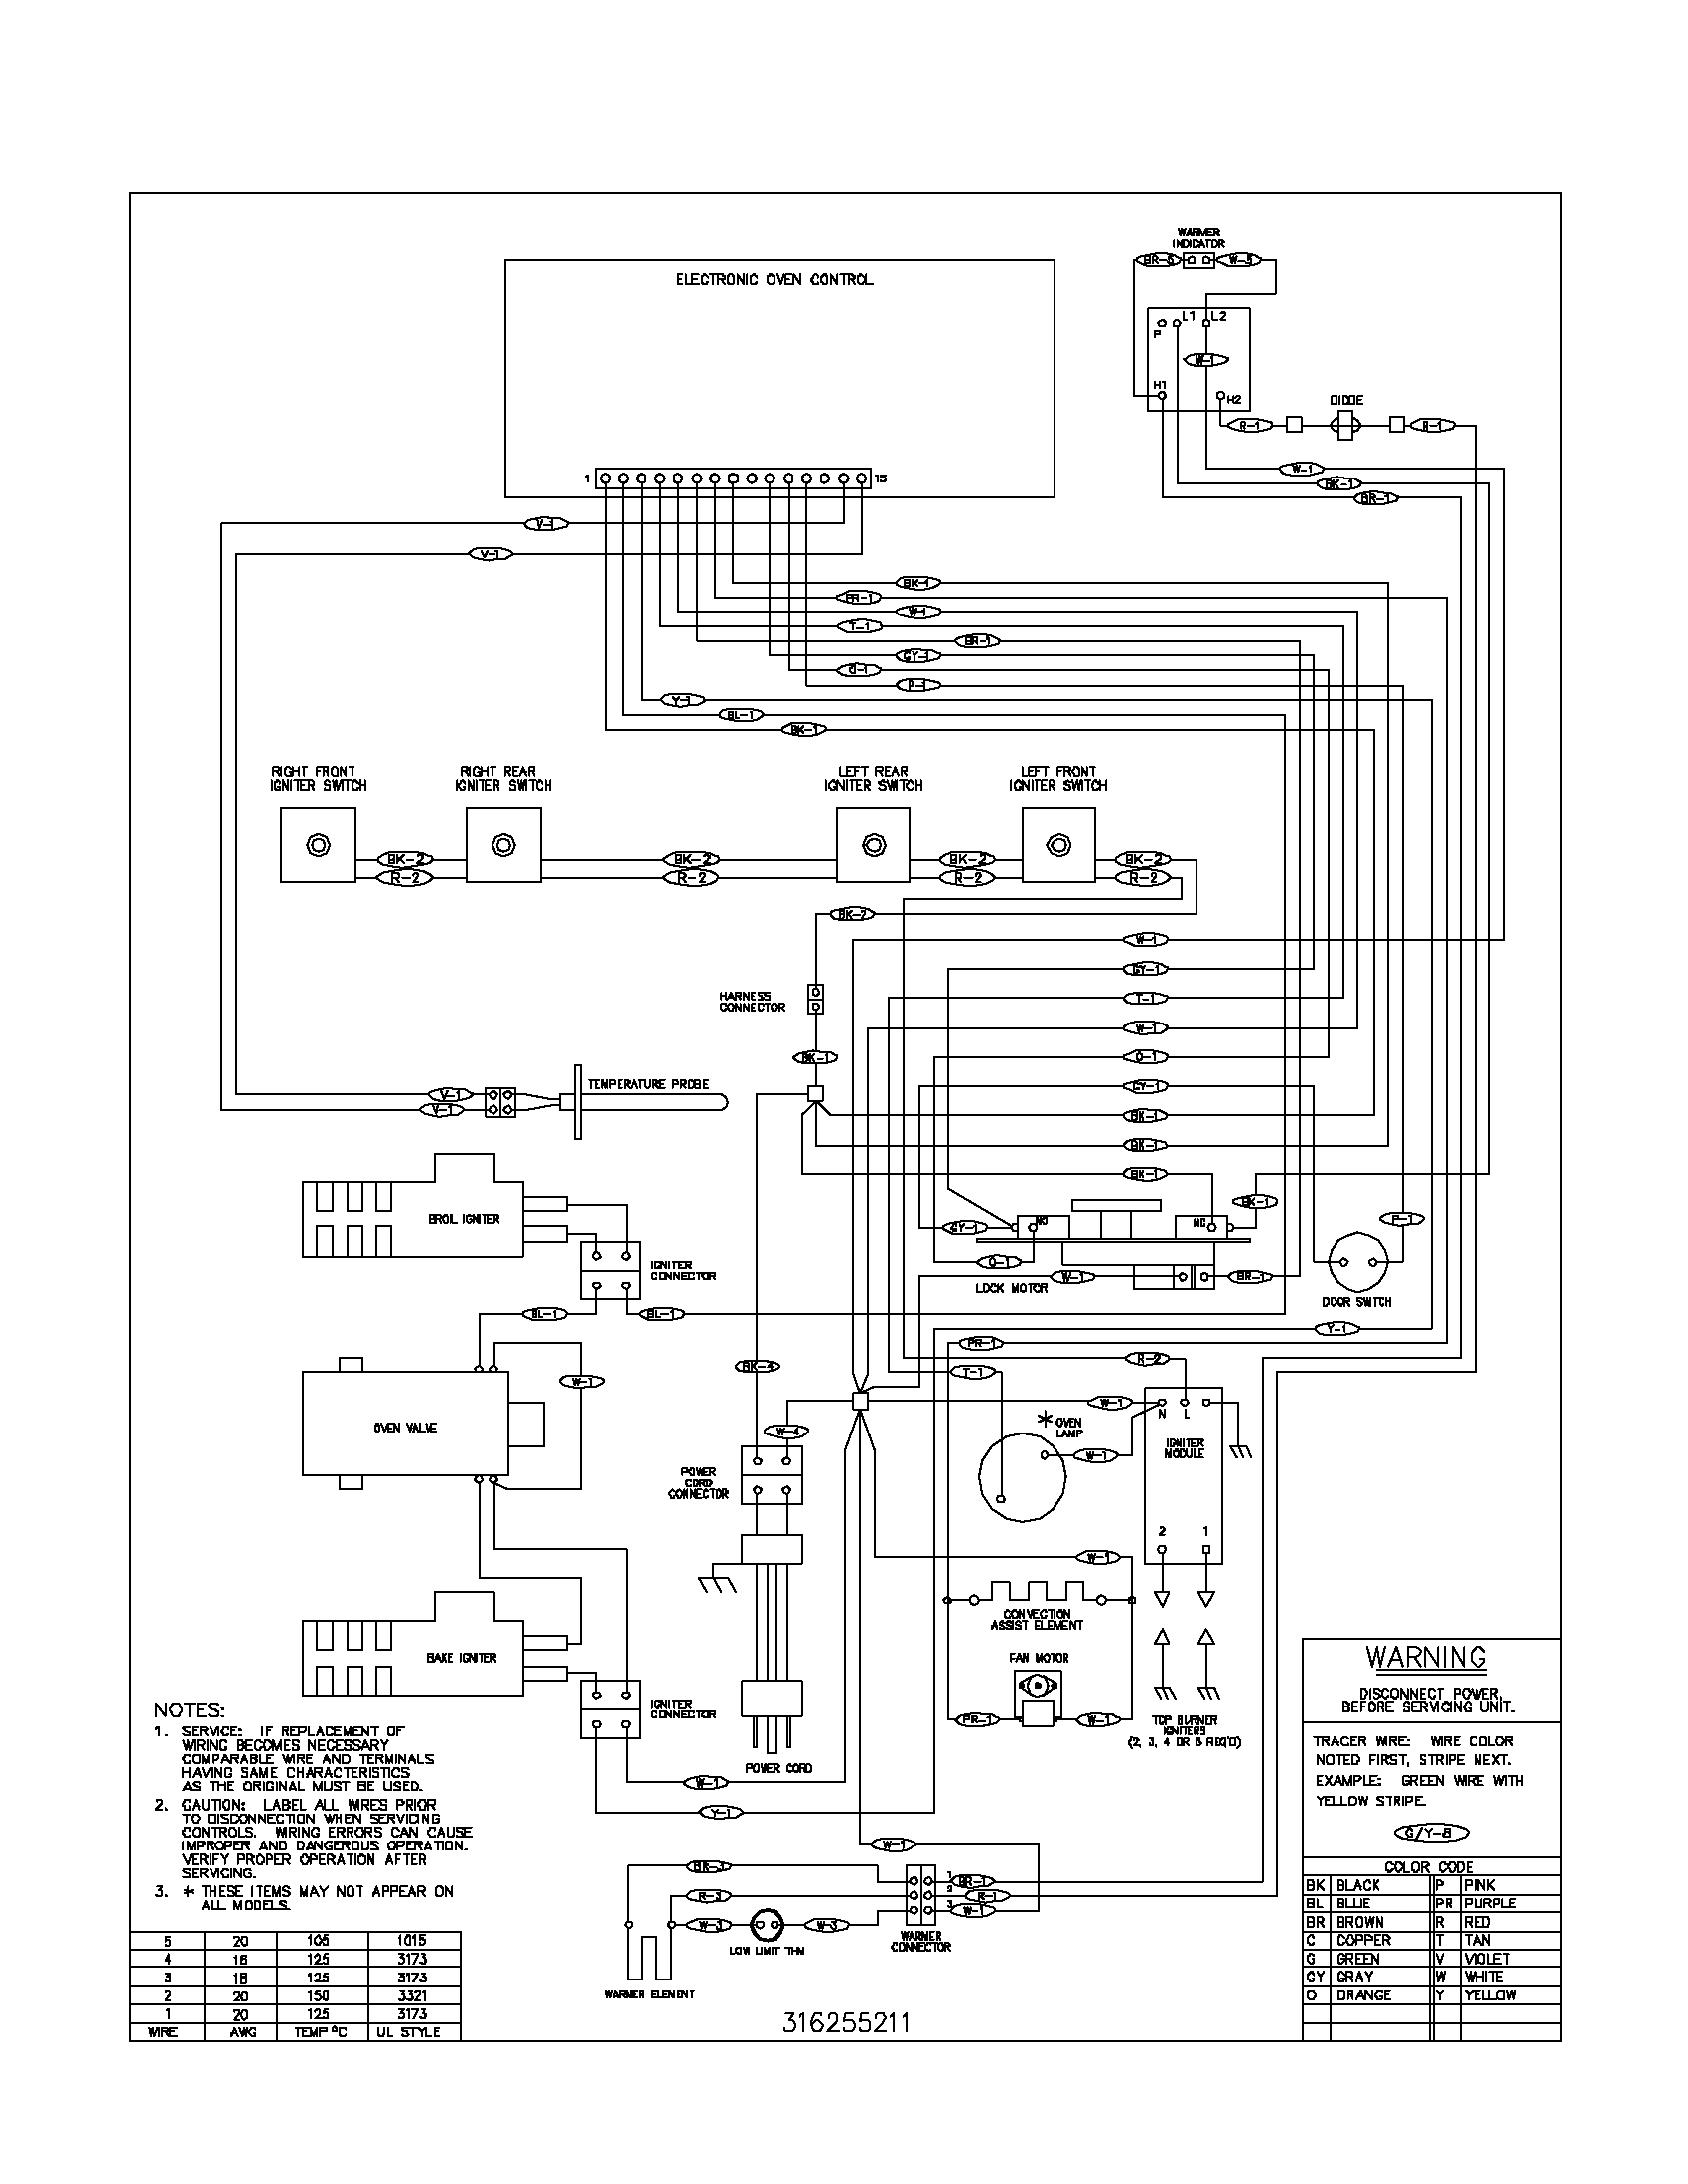 wiring diagram parts sample wiring diagrams appliance aid readingrat net wiring diagram frigidaire dryer at gsmx.co